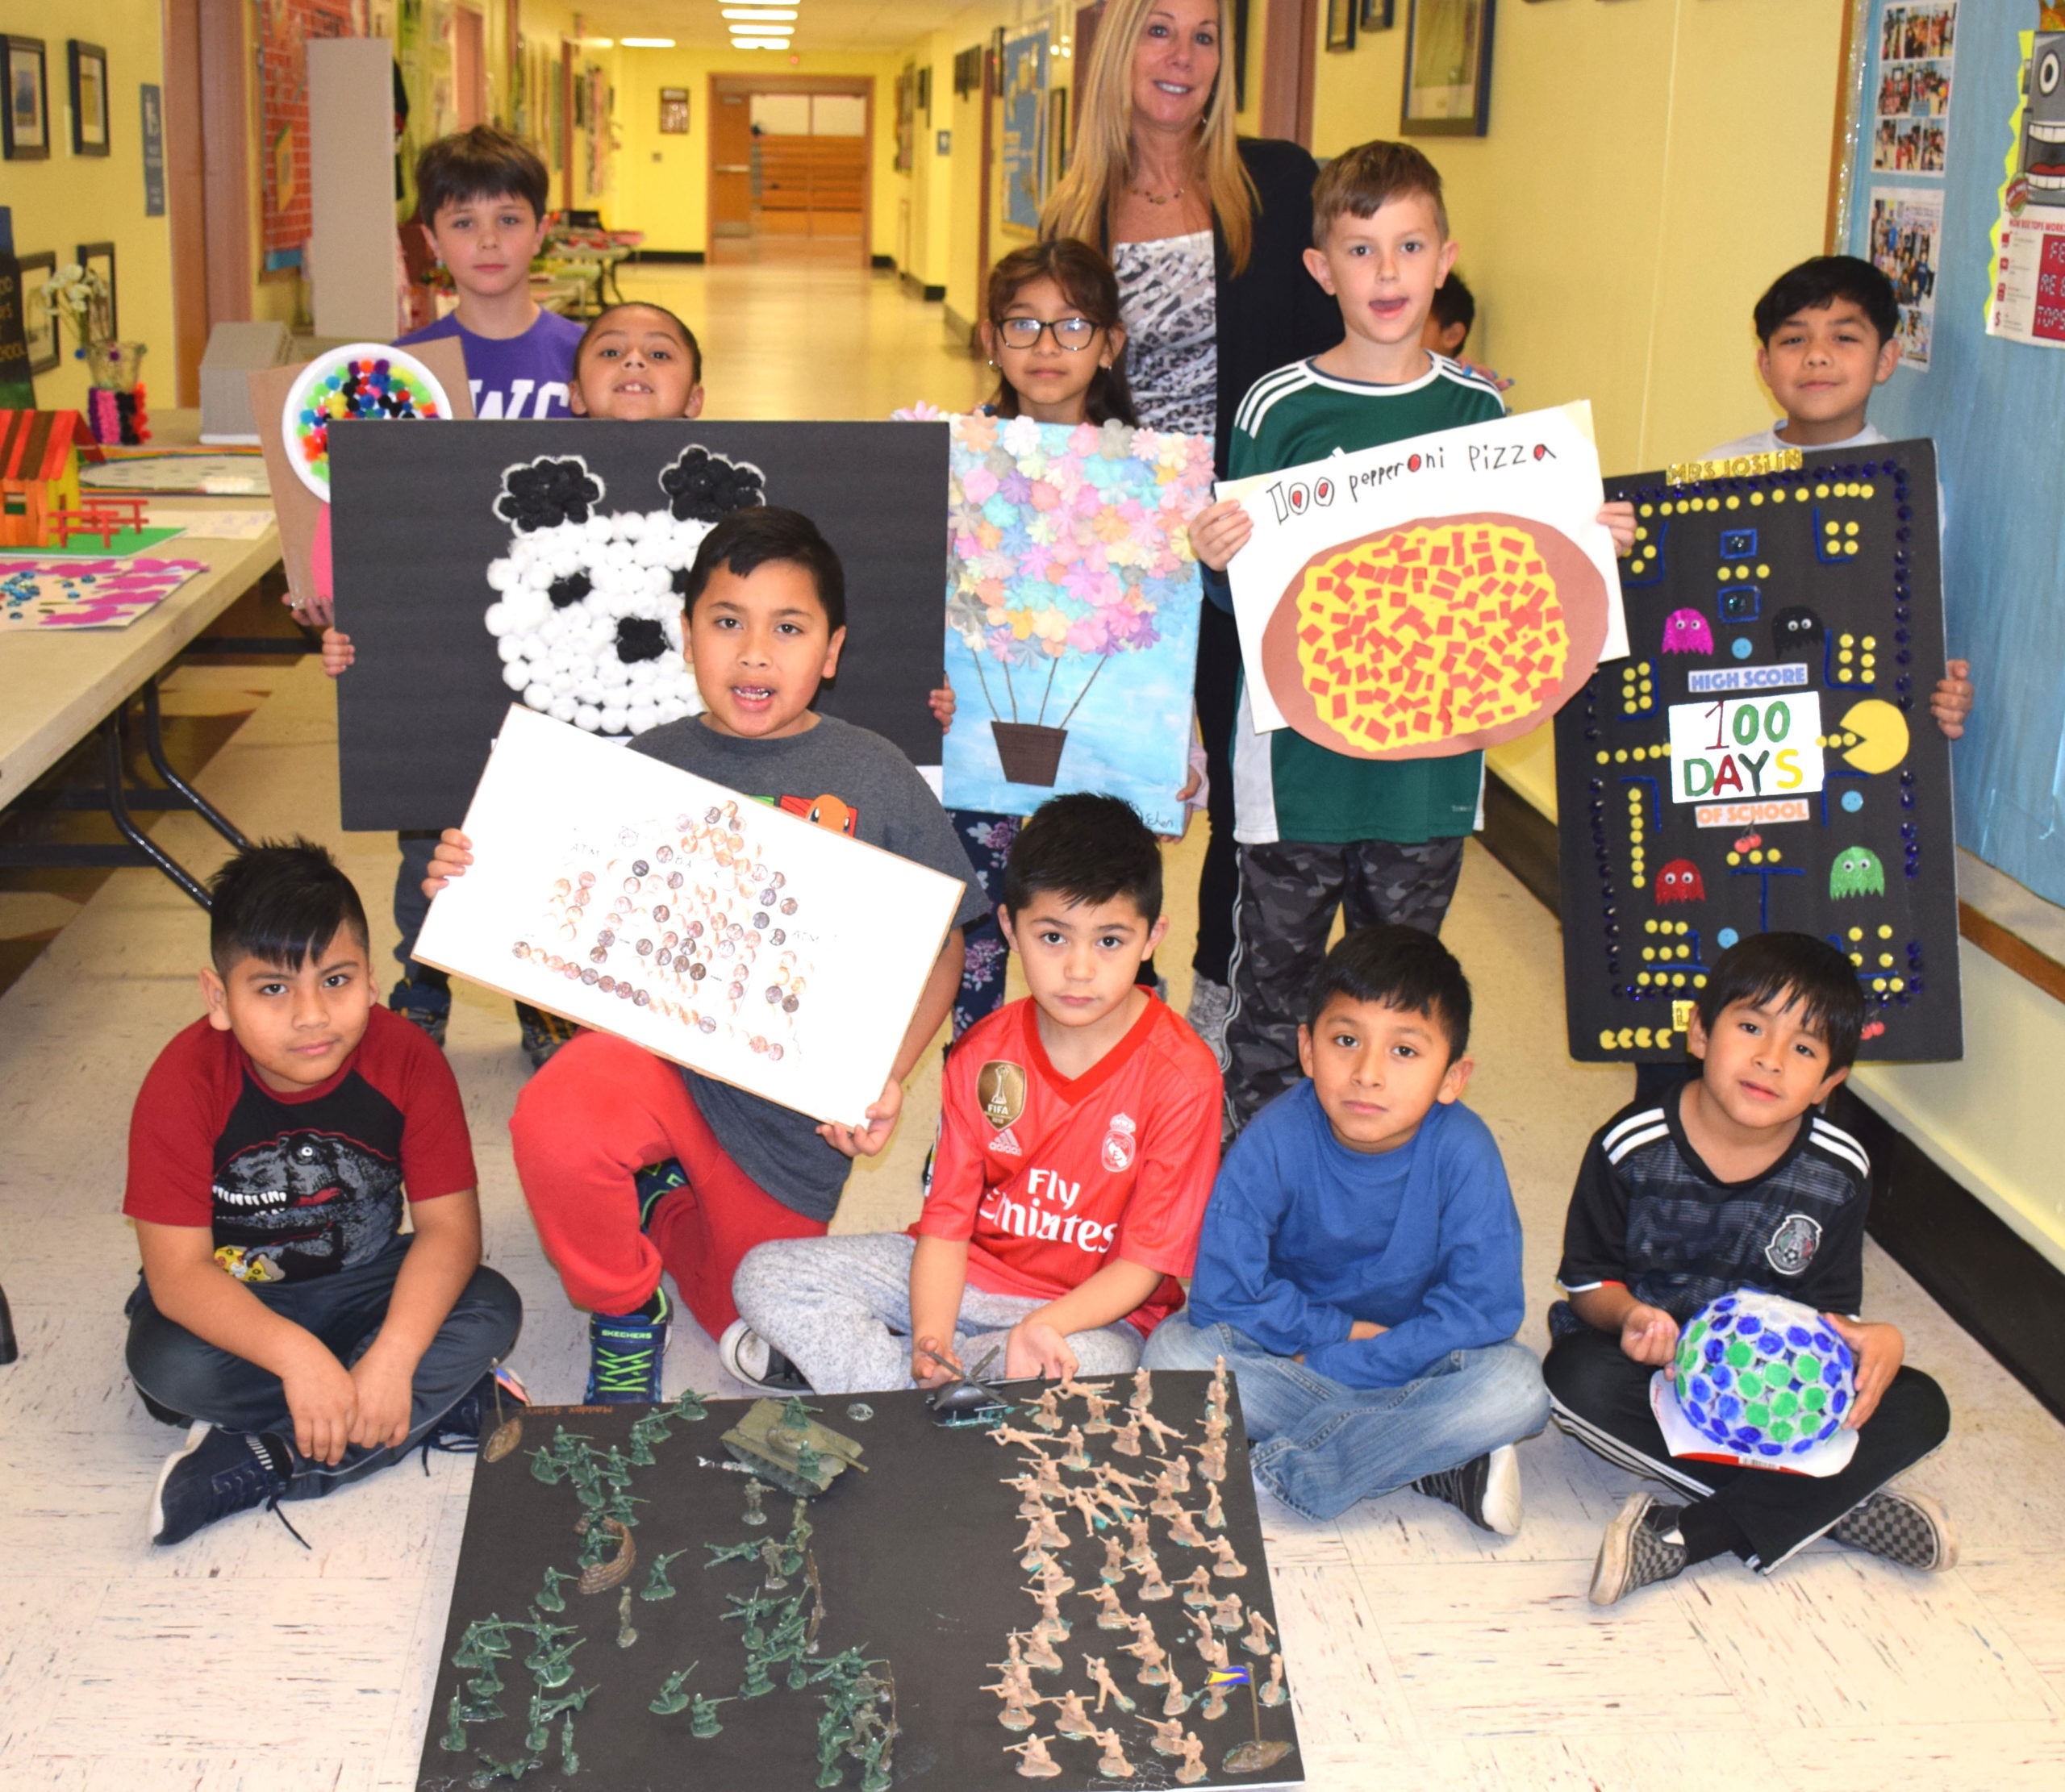 Second-graders at Hampton Bays Elementary School marked 100 days of school by creating colorful and creative projects. Each project included 100 items of the student's choosing.